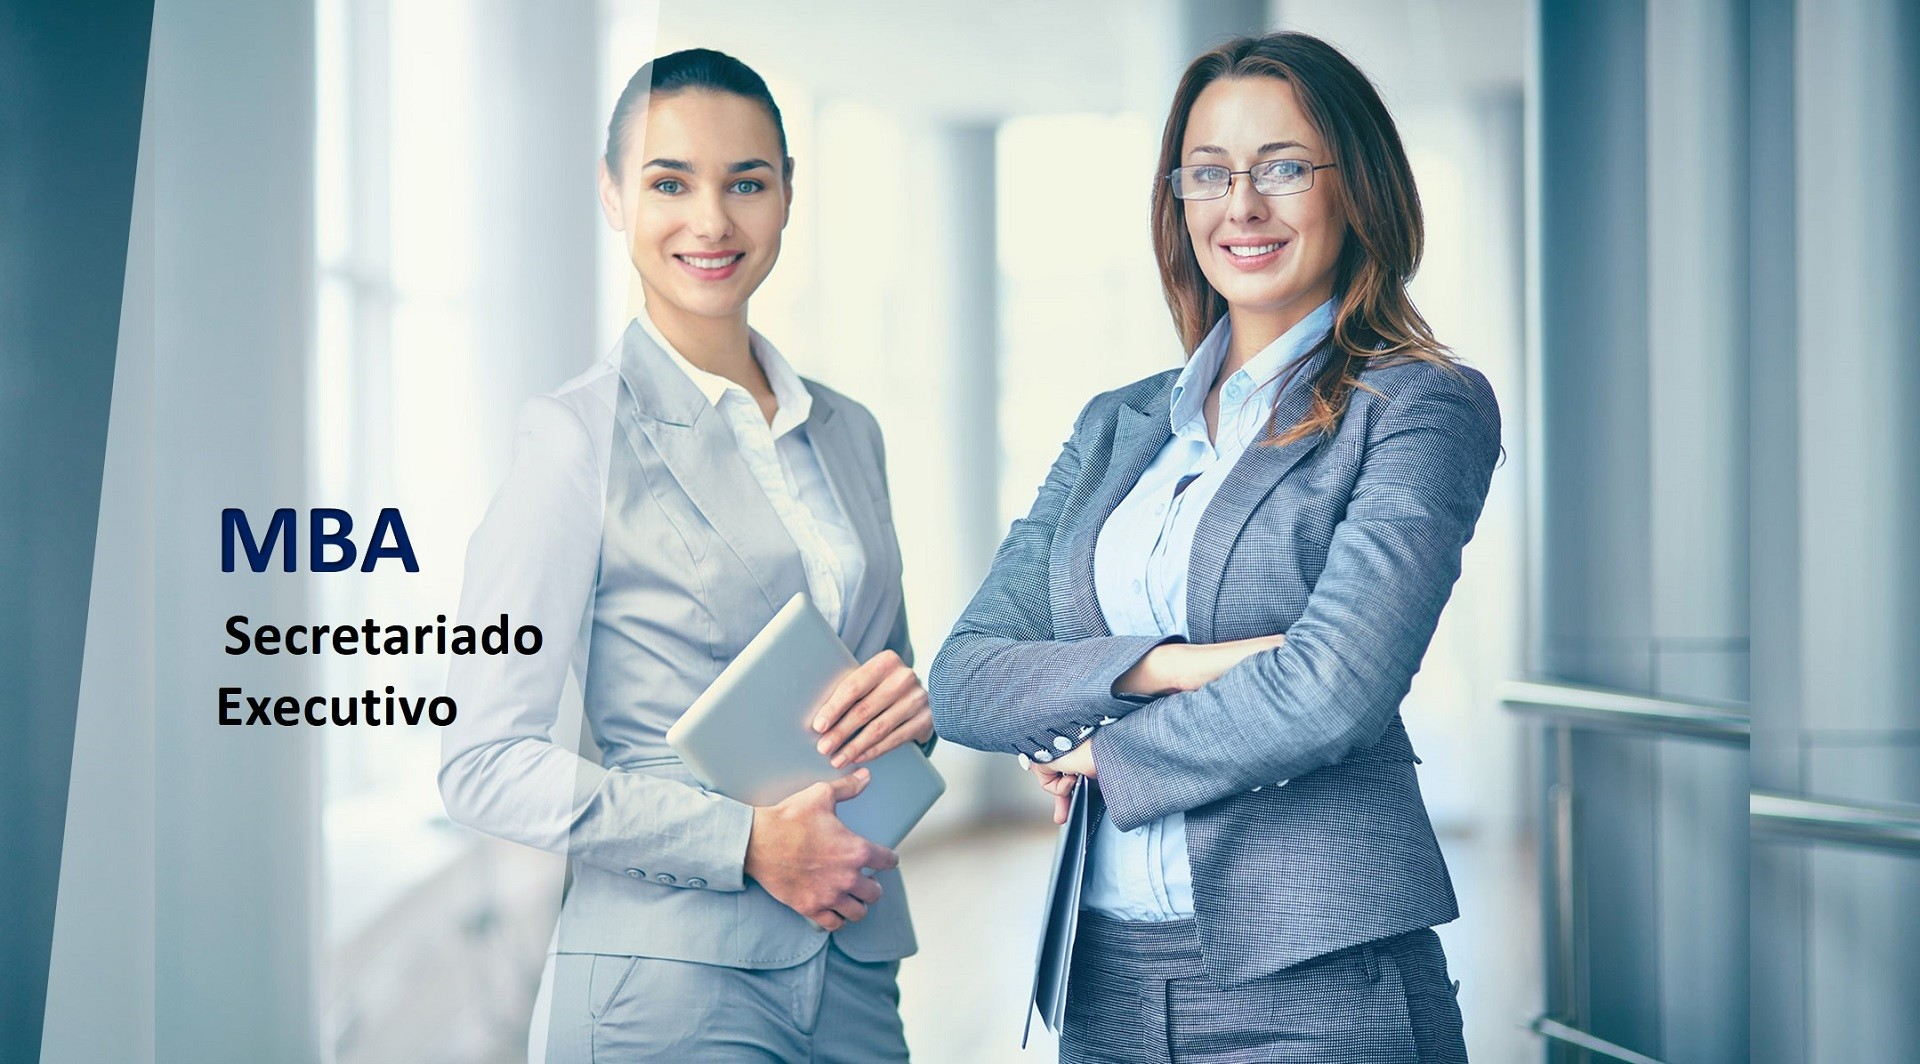 MBA – Secretariado Executivo